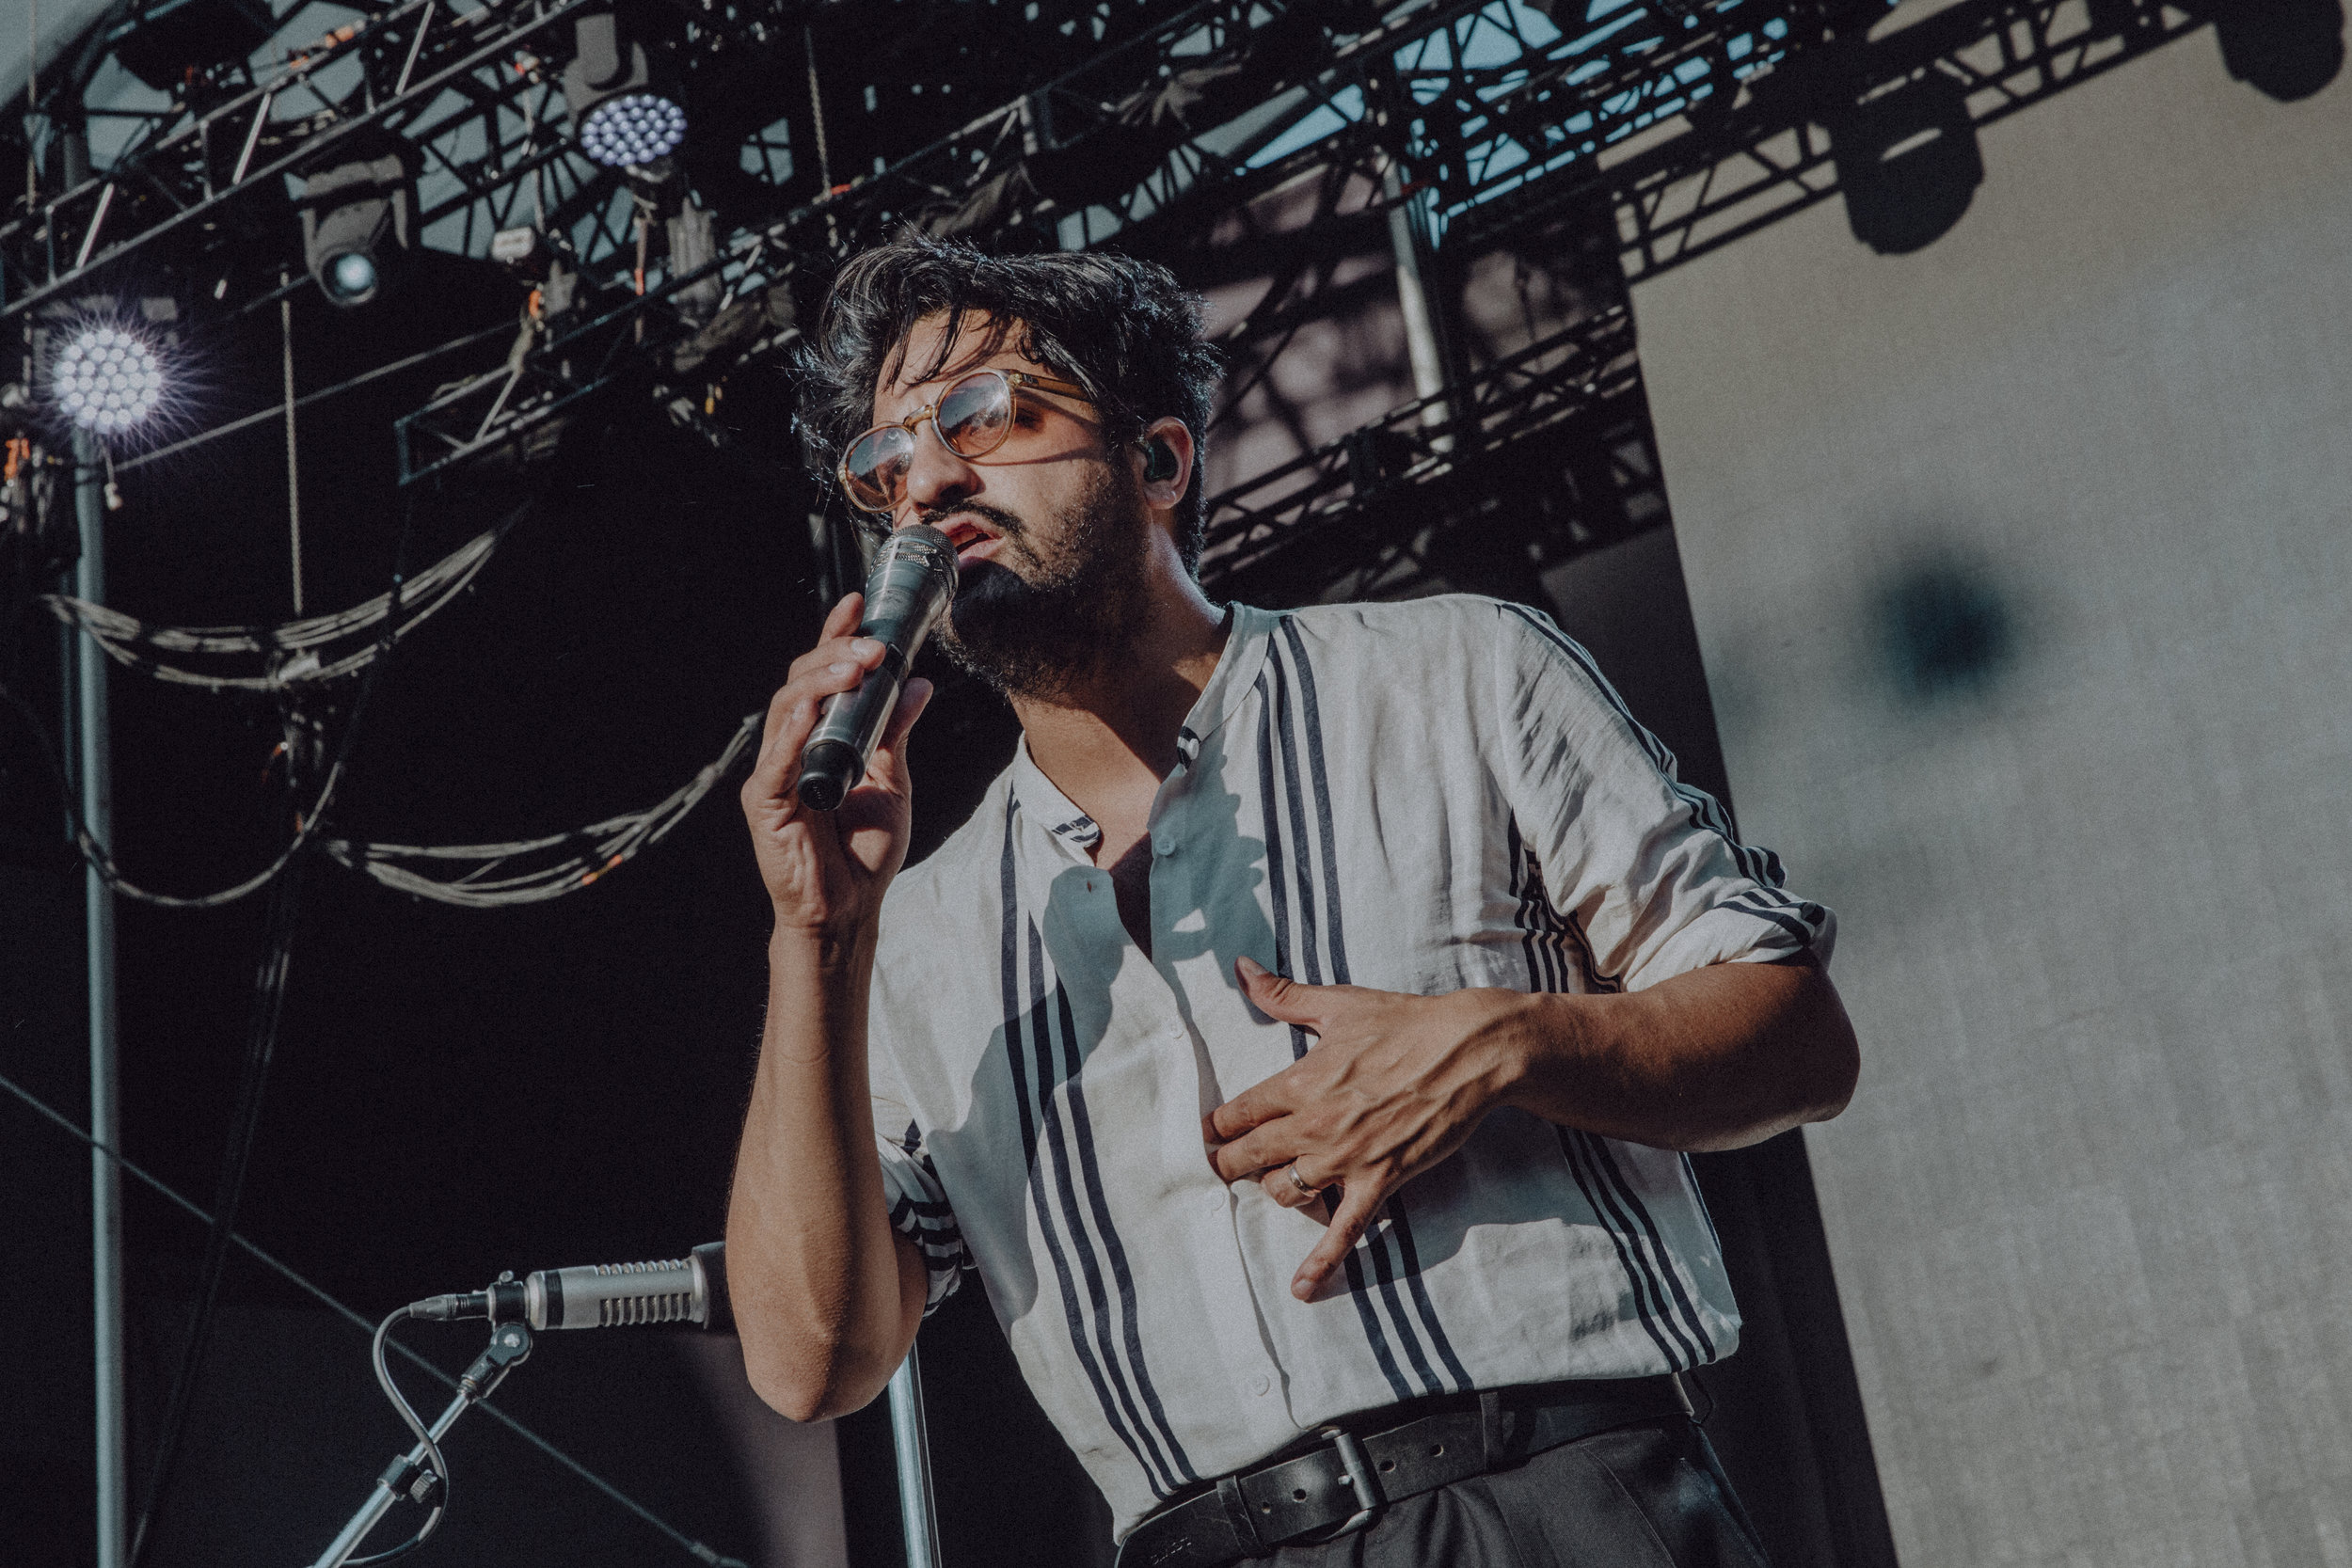 WILLIAMS_YOUNGTHEGIANT-5.jpg